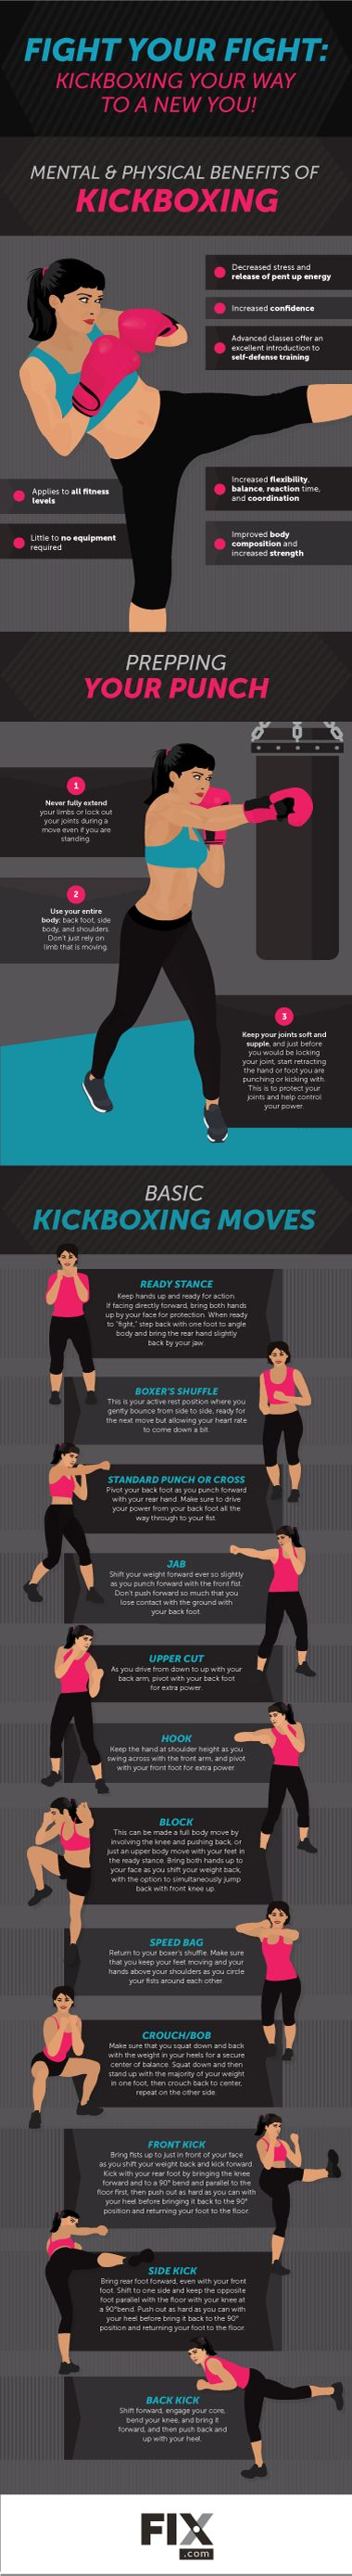 Workouts don't need to be boring. Kickboxing classes are spent honing your form and technique, which makes you feel empowered!